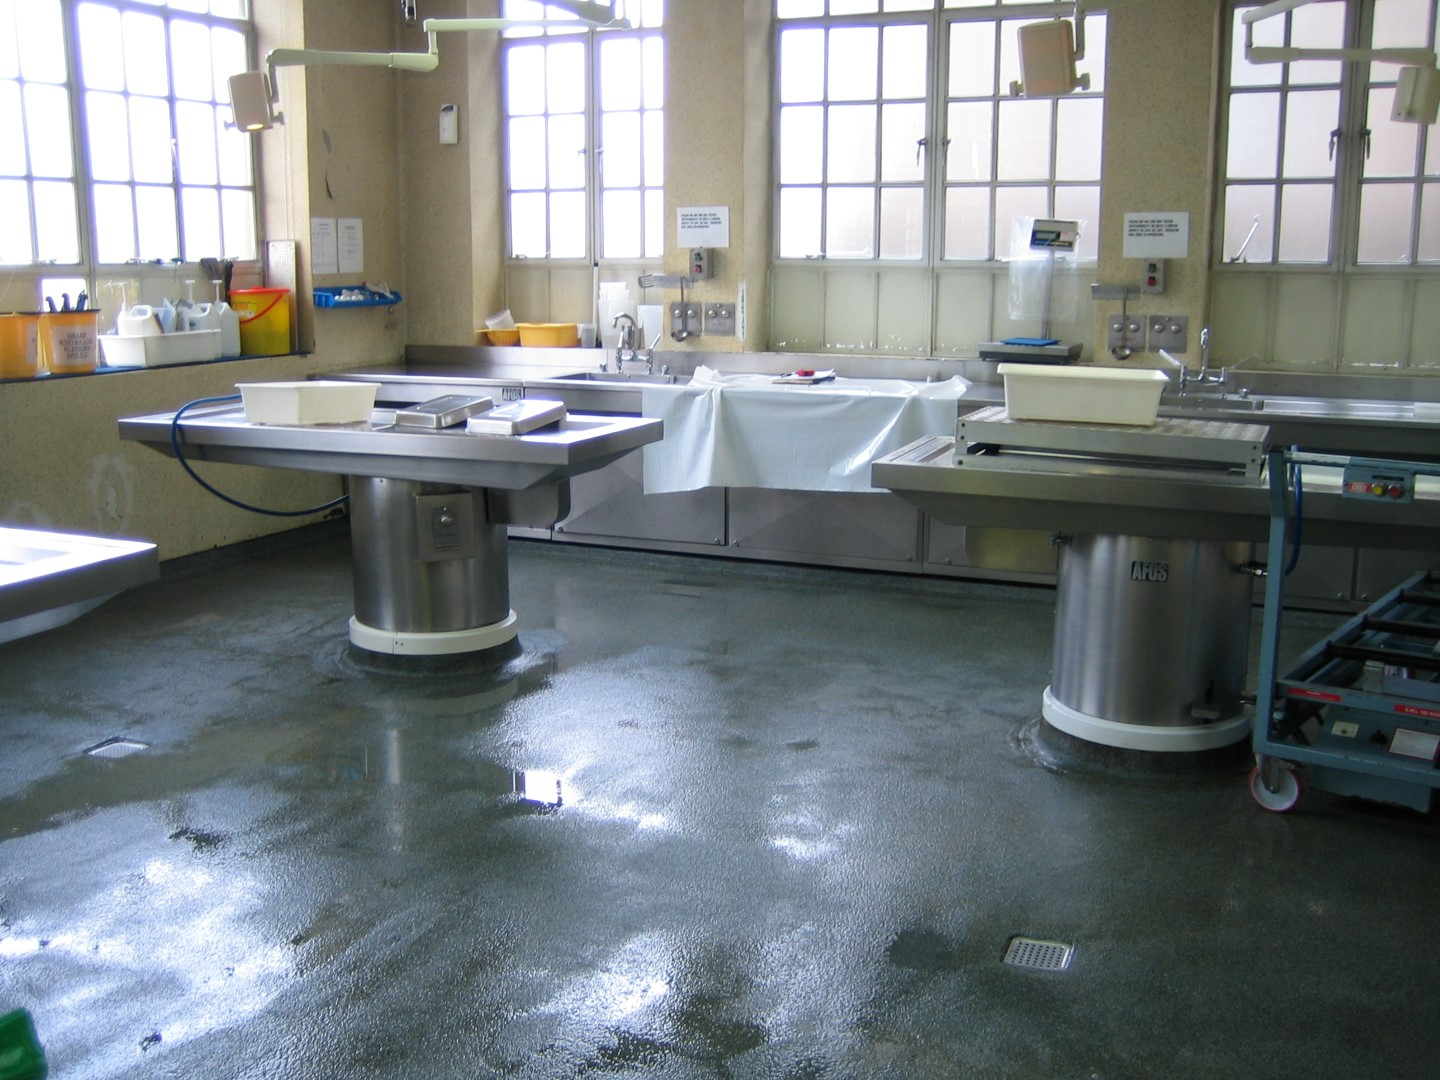 Uneven Kitchen Floor Belzona 5231 Sg Laminate Epoxy Floor Coating